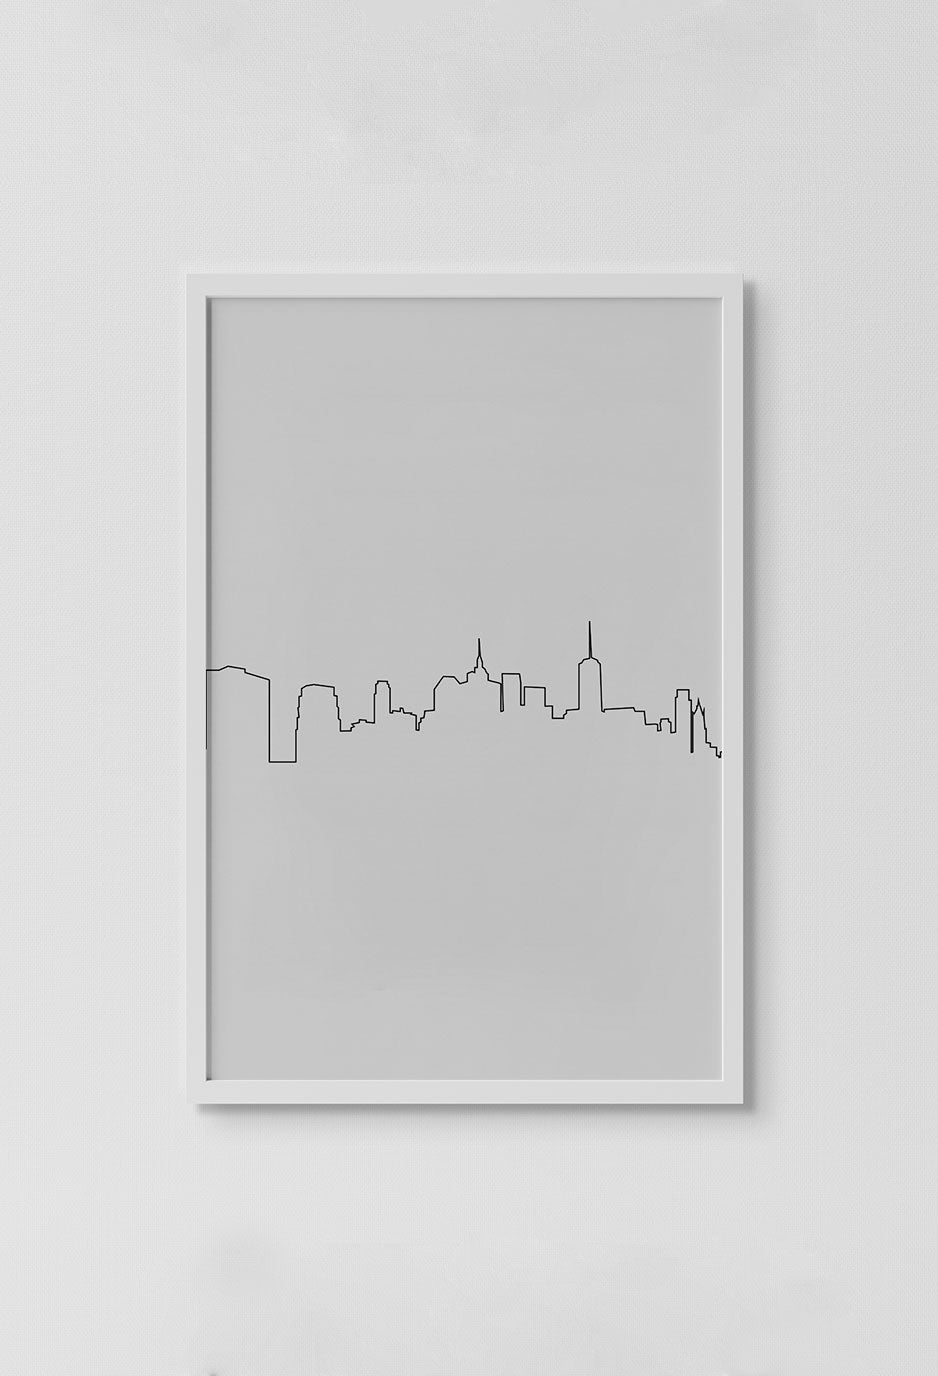 image of print of stencil drawing of city skyline in black lines with white background in white frame on white wall.